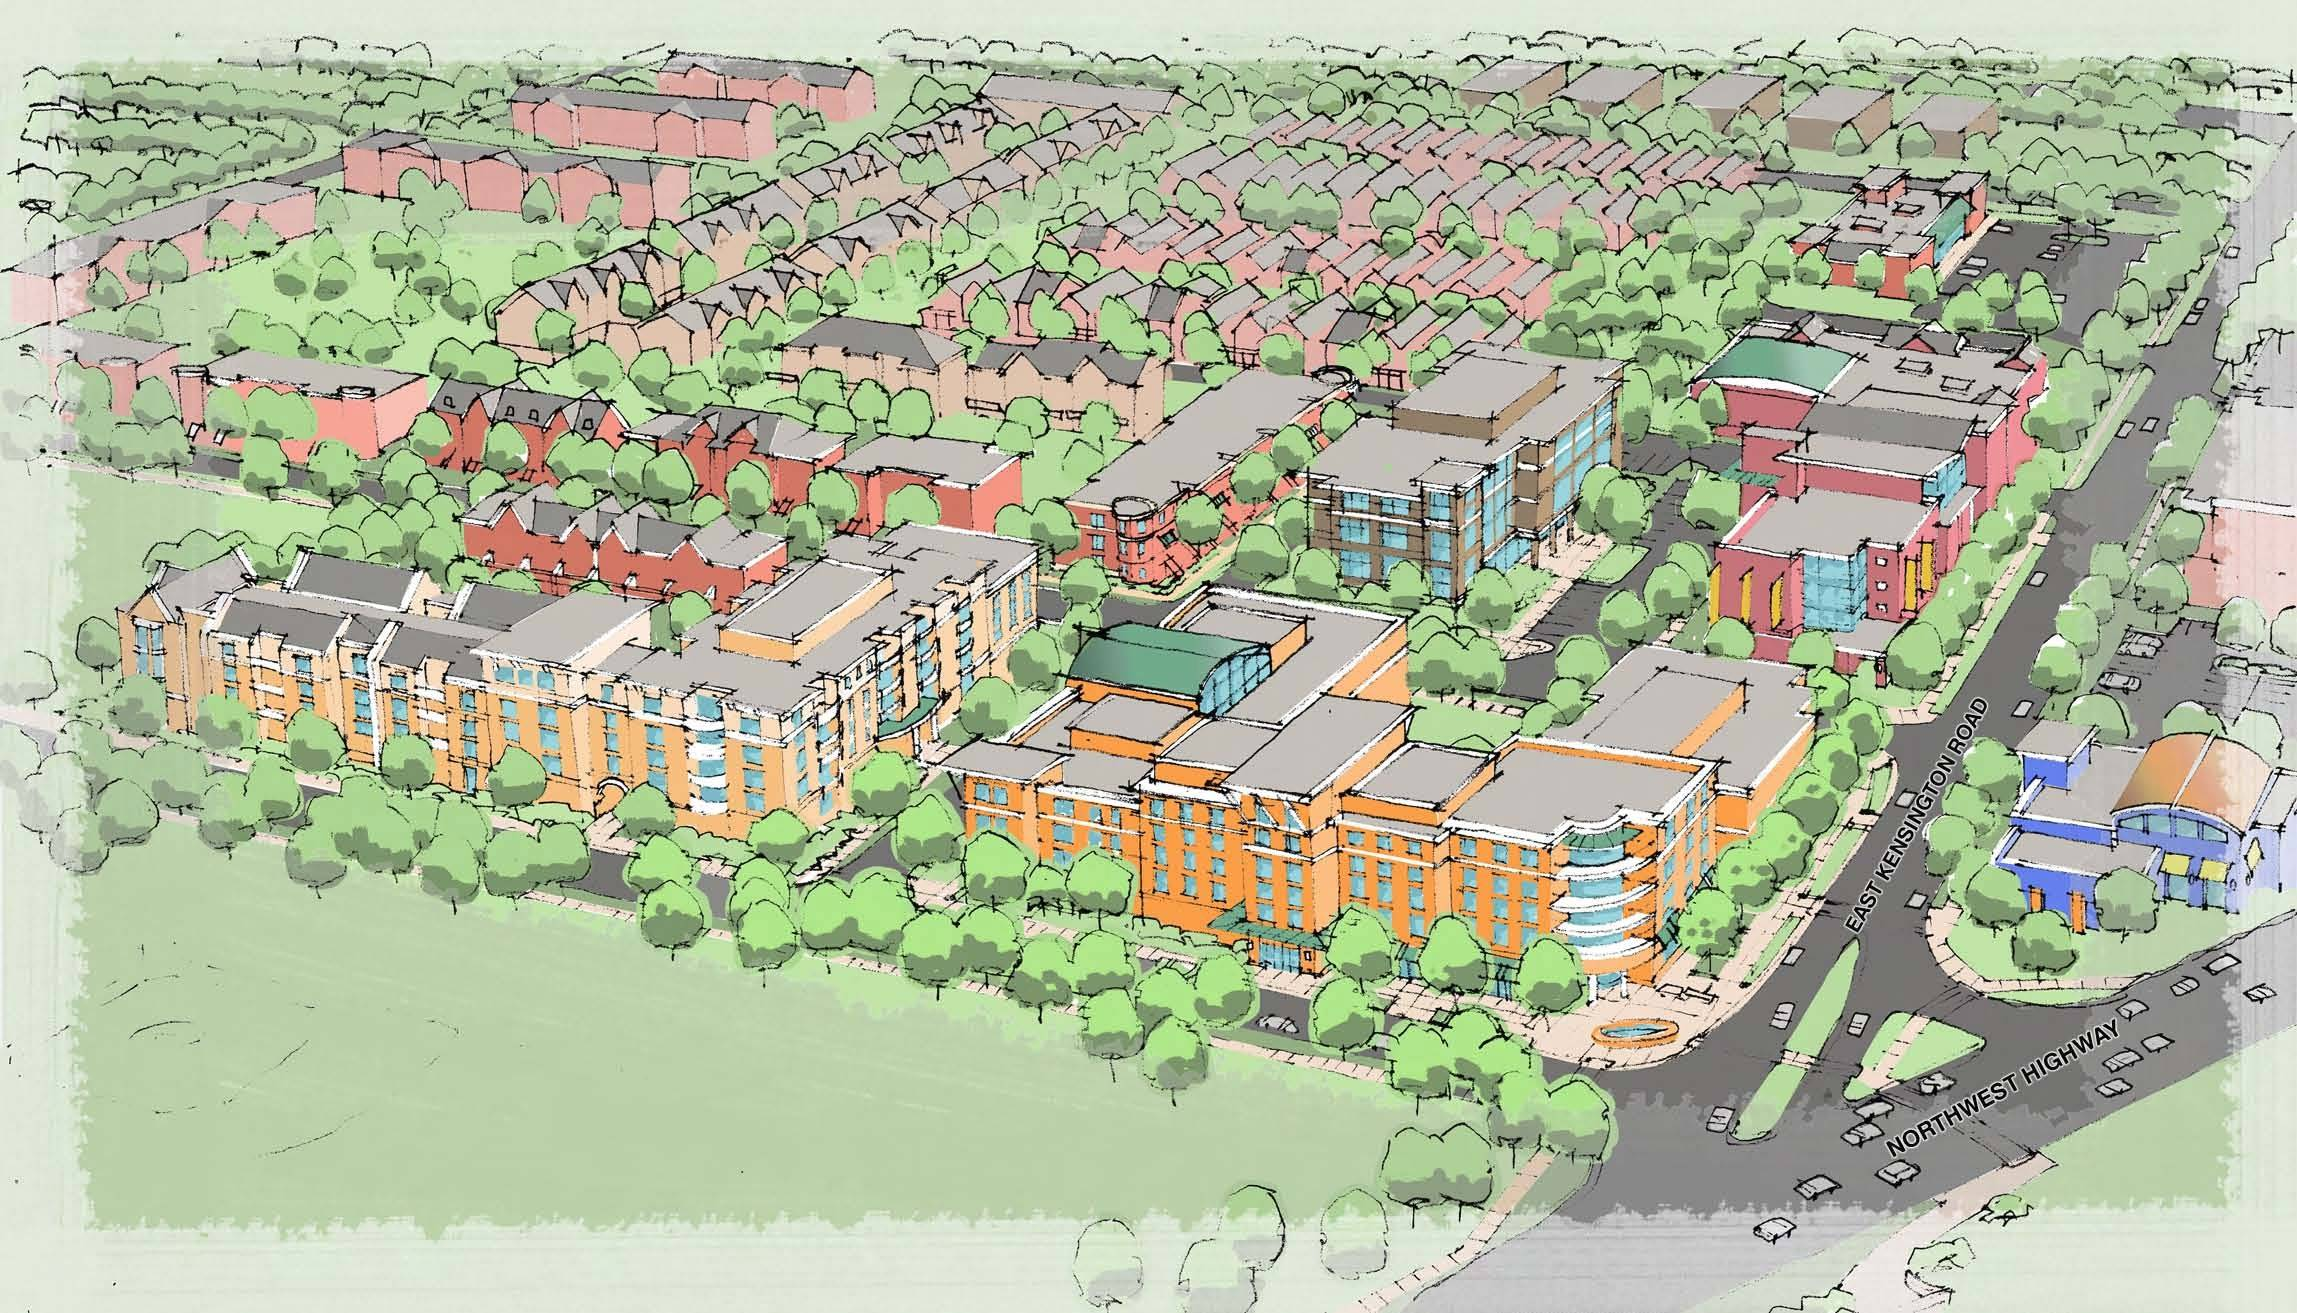 Proposed redevelopment plans for the Hickory and Kensington area in Arlington Heights include a mix of retail and commercial property.